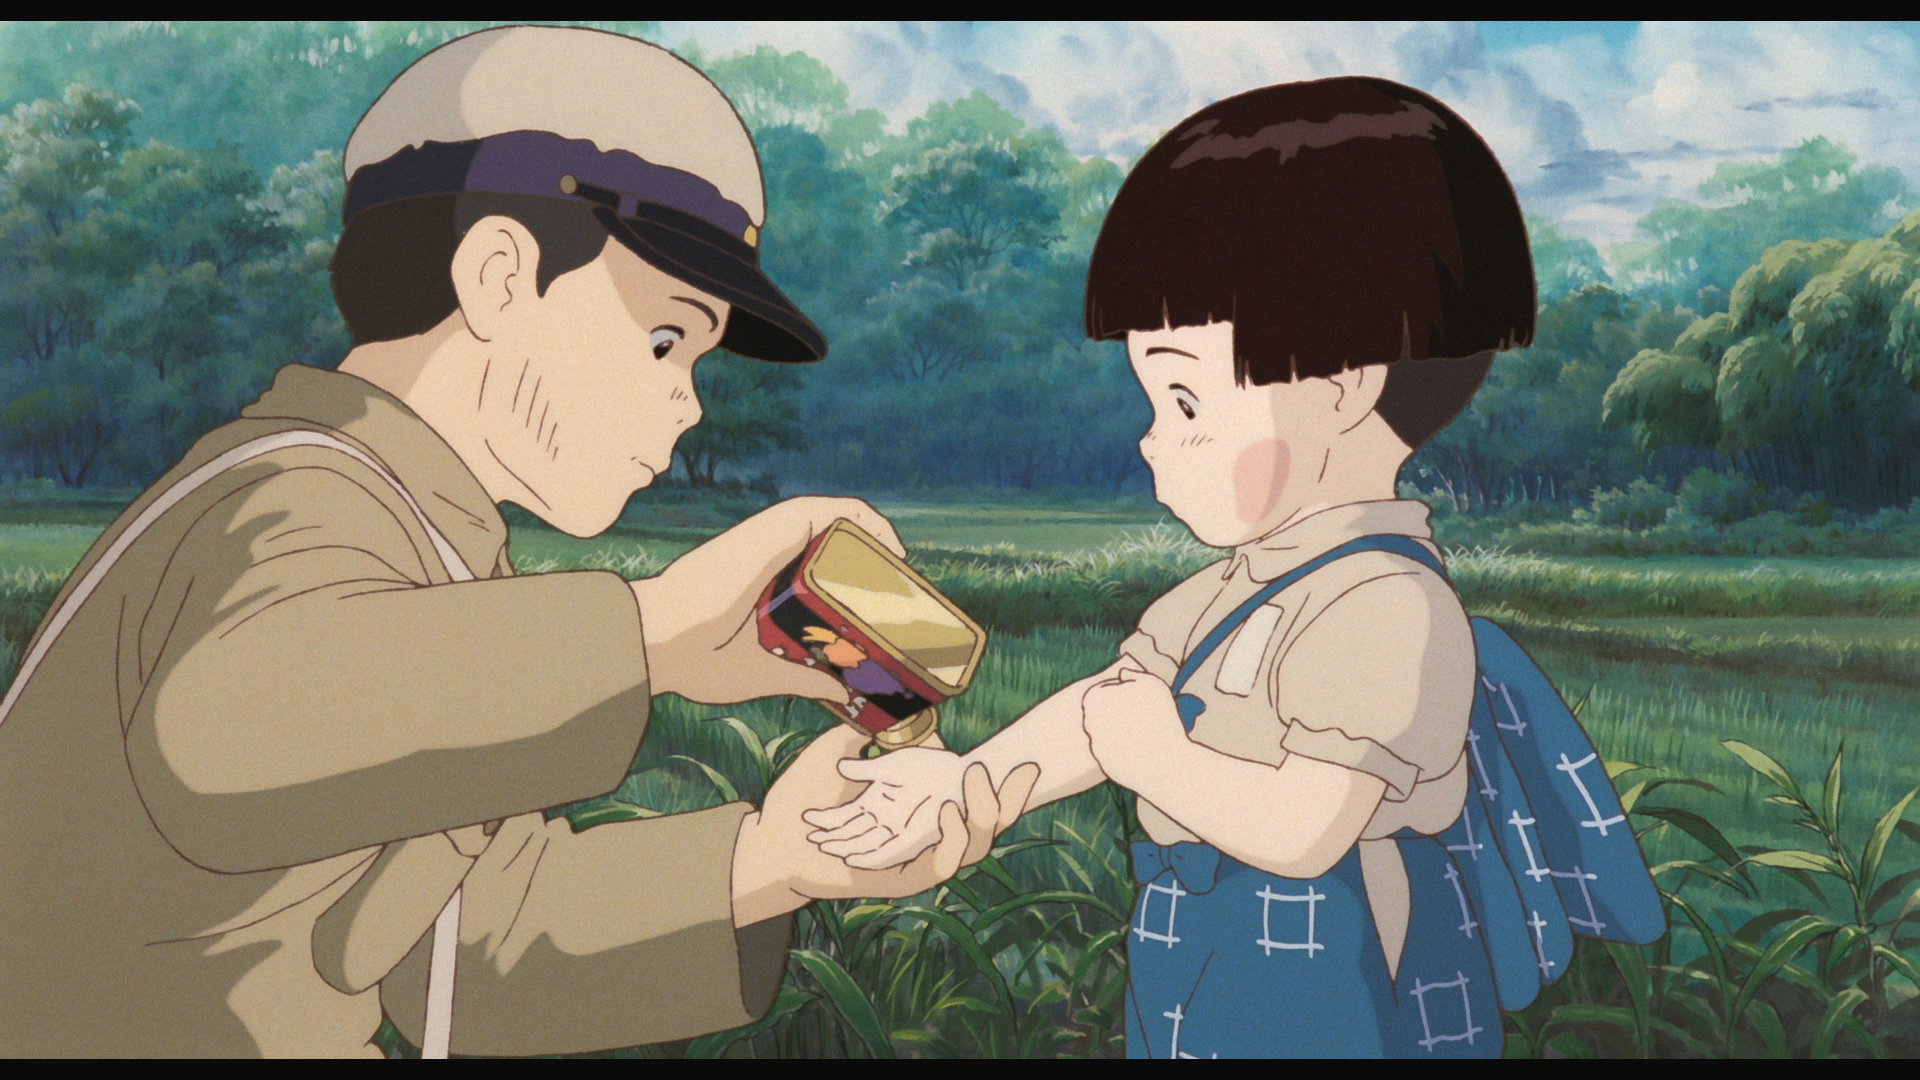 grave of the fireflies discussion Essay about grave of the fireflies discussion joshua schock 13 may 2014 grave of the fireflies 1 the events that take place.